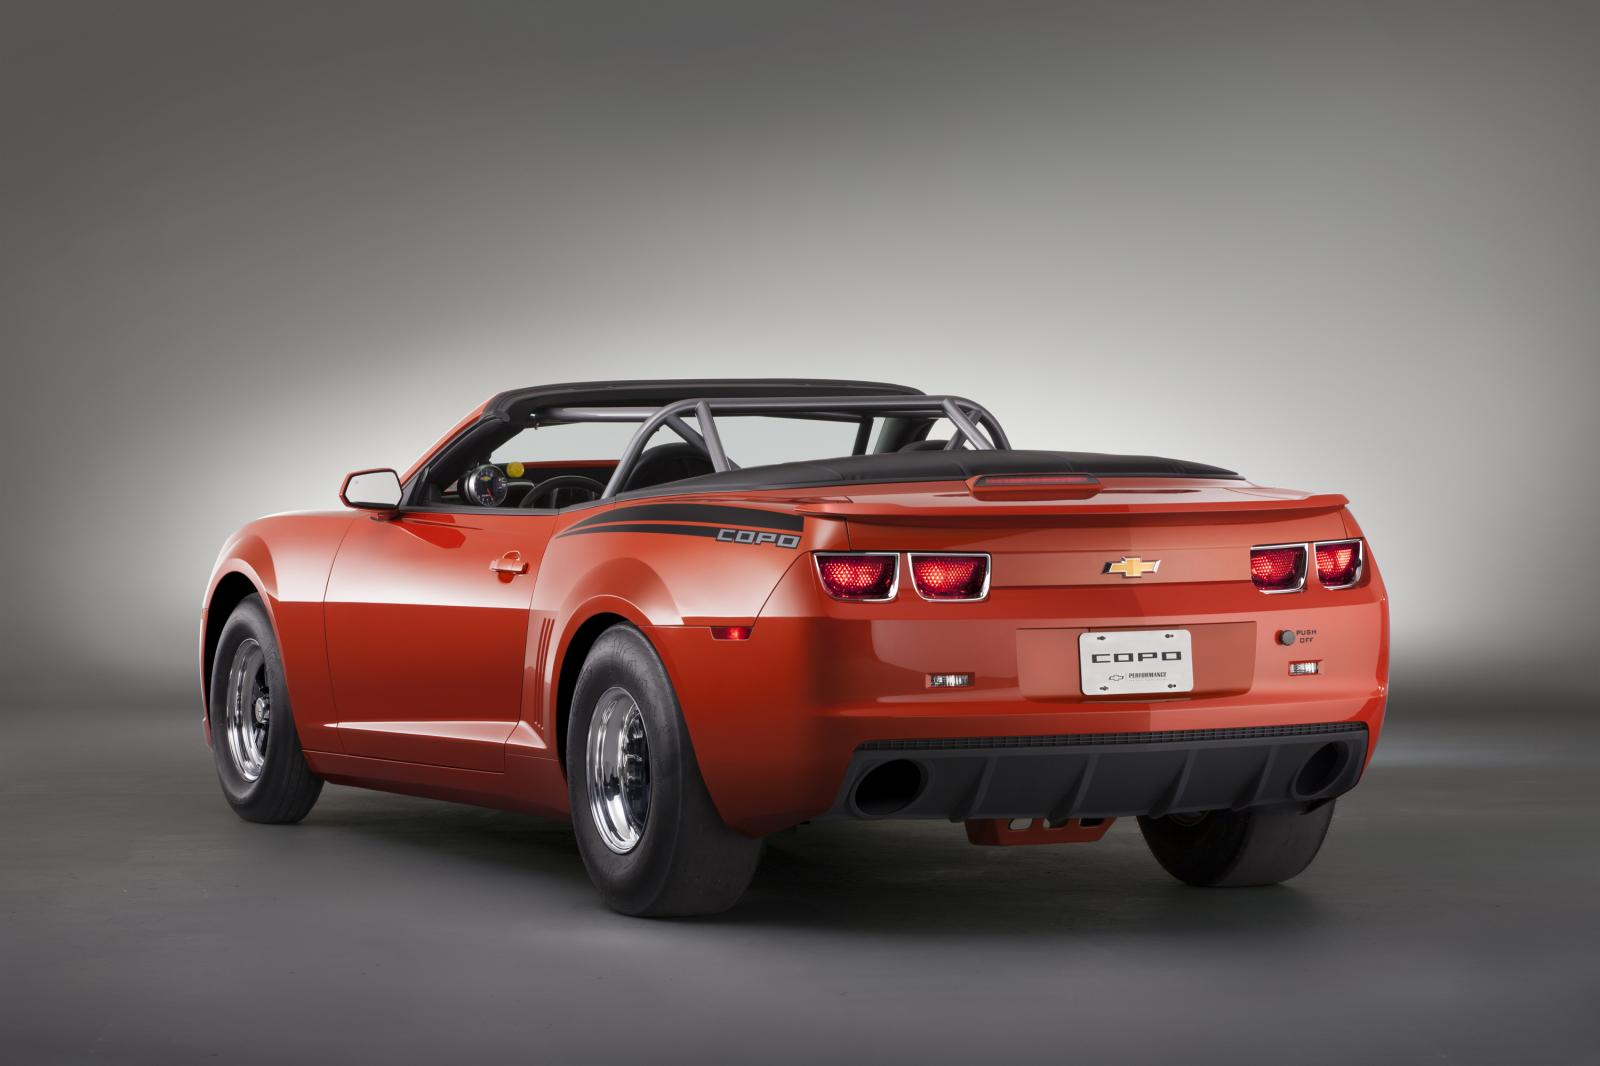 Chevrolet Copo Camaro Convertible In Inferno Orange Shown